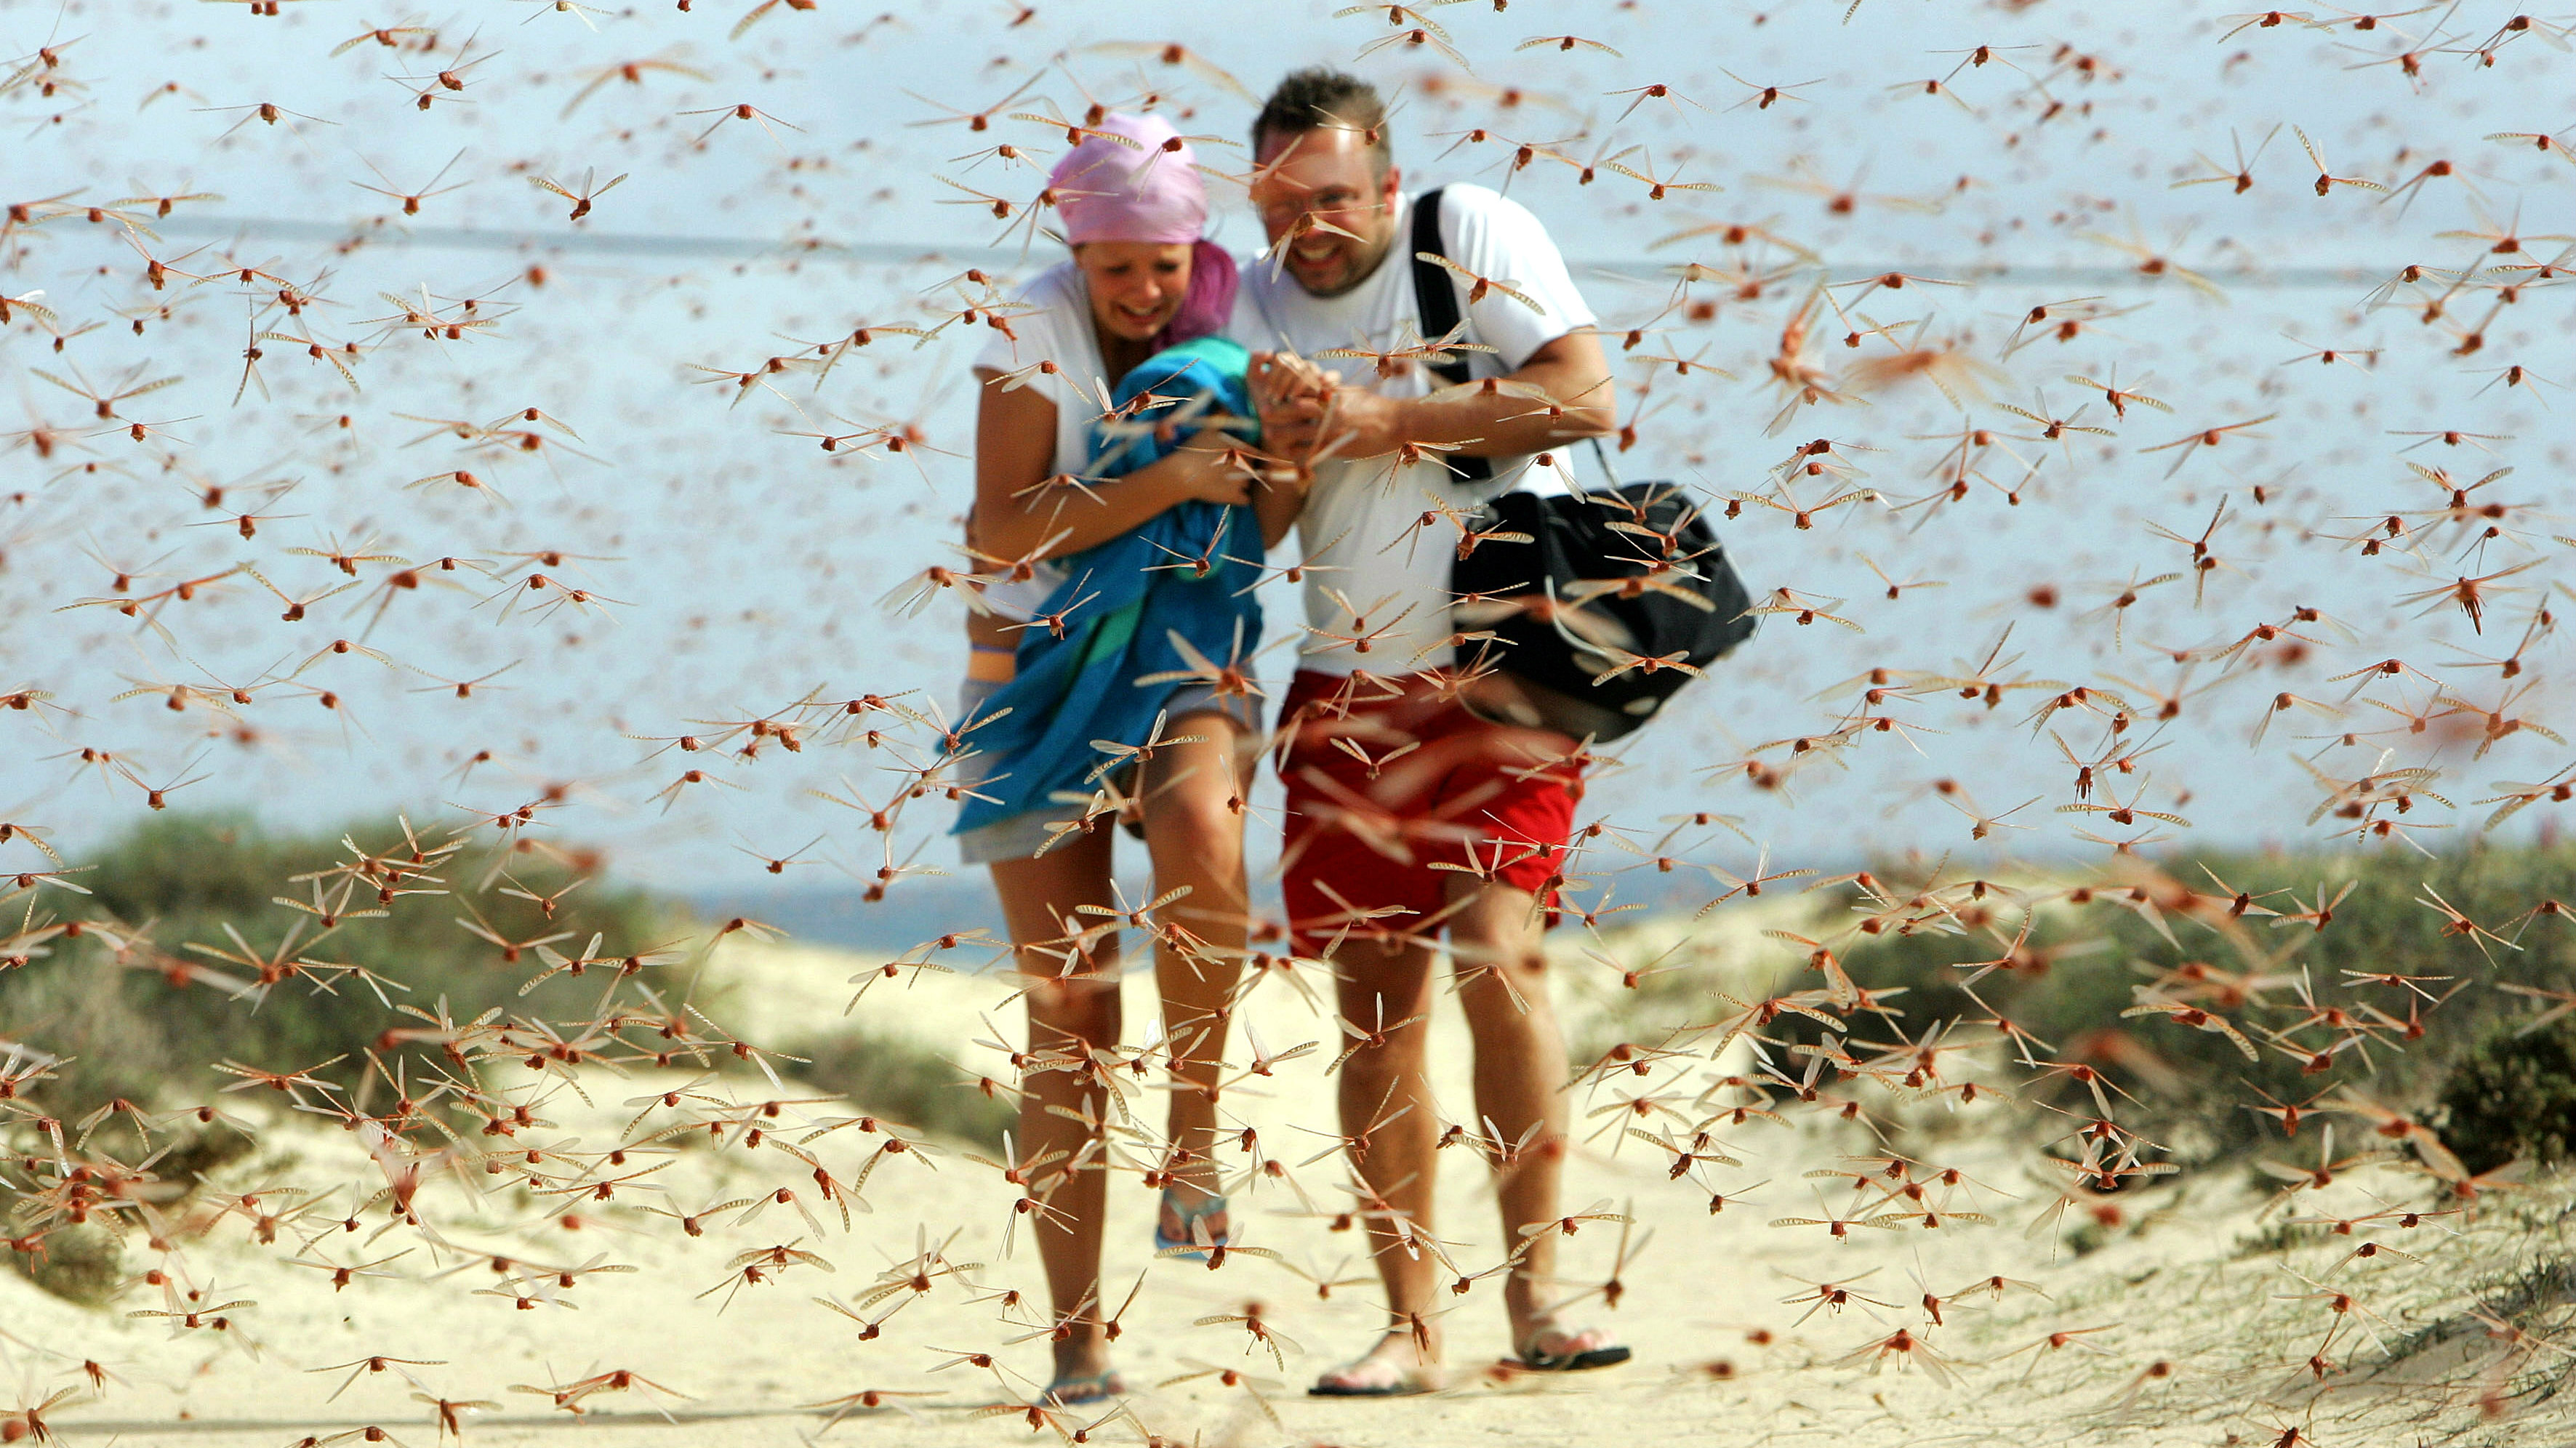 Tourists run through a swarm of pink locusts near a beach in Corralejo, on the Spanish Canary Island of Fuerteventura, November 29, 2004. Authorities in the Canaries have issued an alert as swarms of locusts arrived over the weekend from western Africa, with environmental experts estimating that some 100 million of the insects have reached the Canaries. Aid agencies claim that the locusts have destroyed up to a third of the crop in African countries affected by the locust plague.